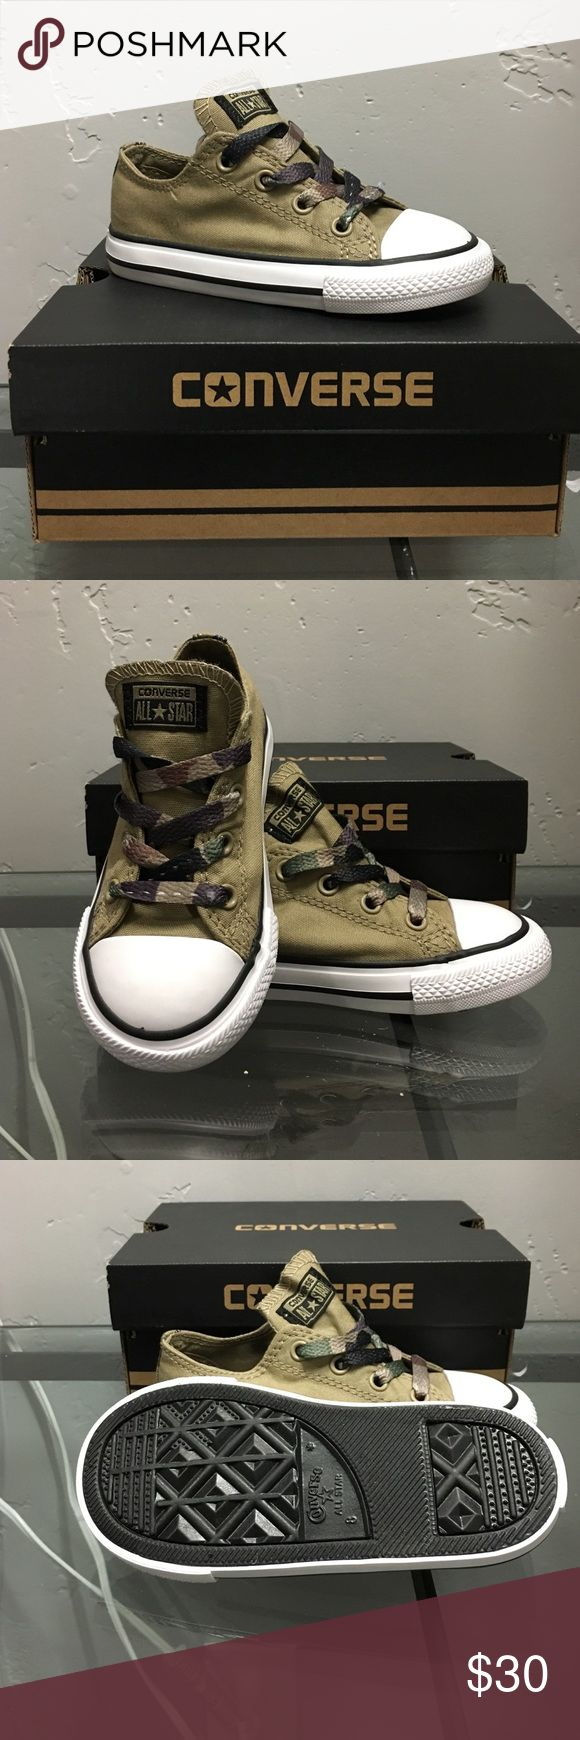 Camo converse Super cute and manly Camo Converse. Size 8 infant / new in box Converse Shoes